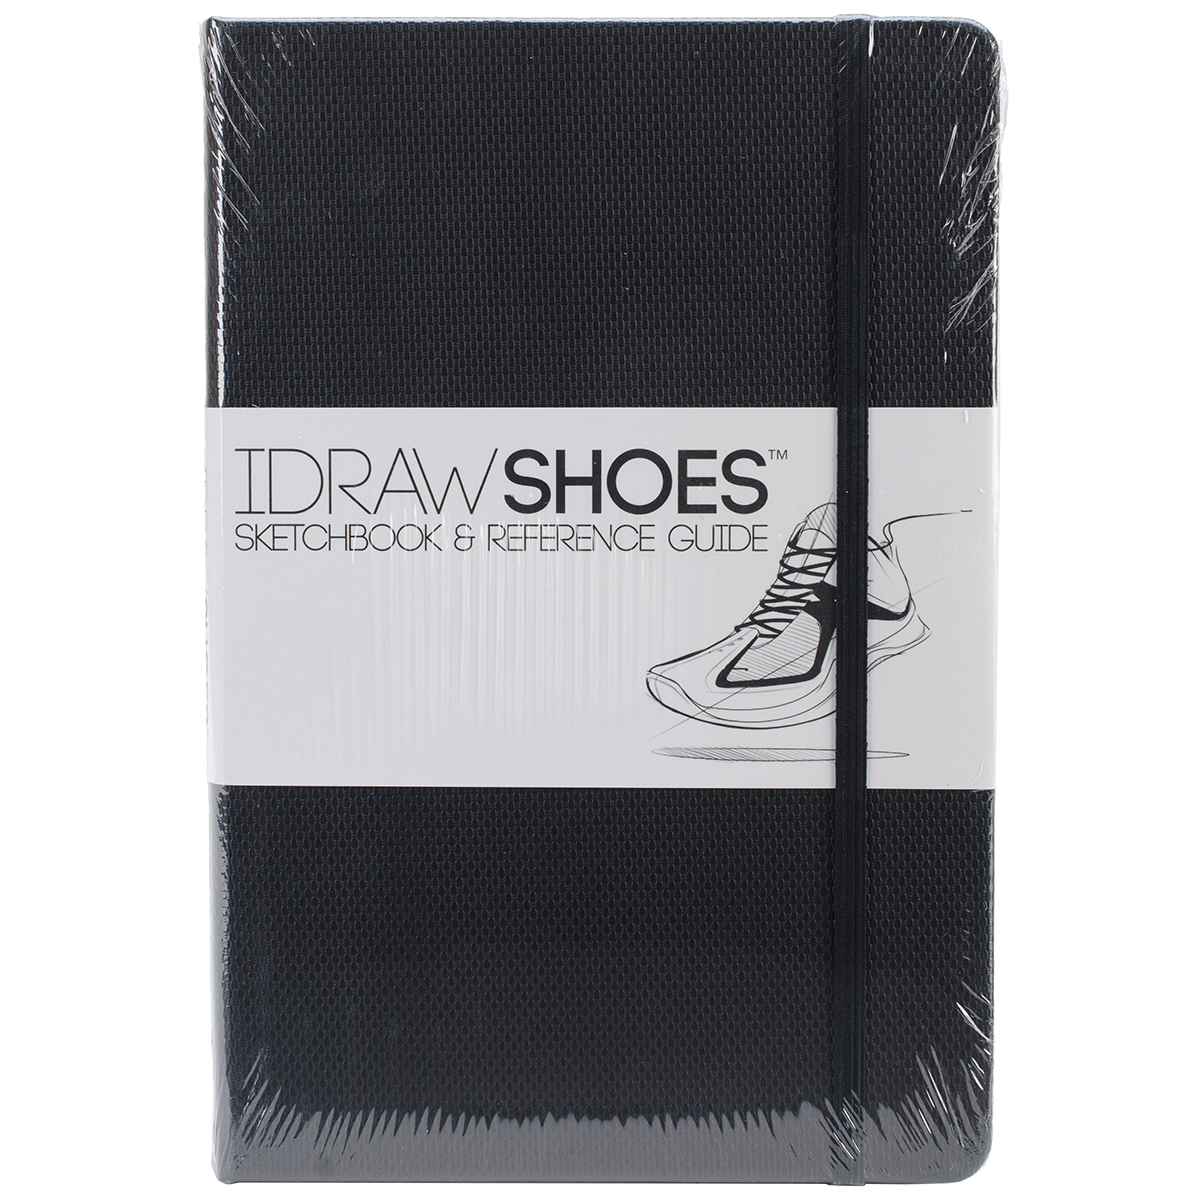 IDRAW Shoes Sketchbook & Reference Guide-Black